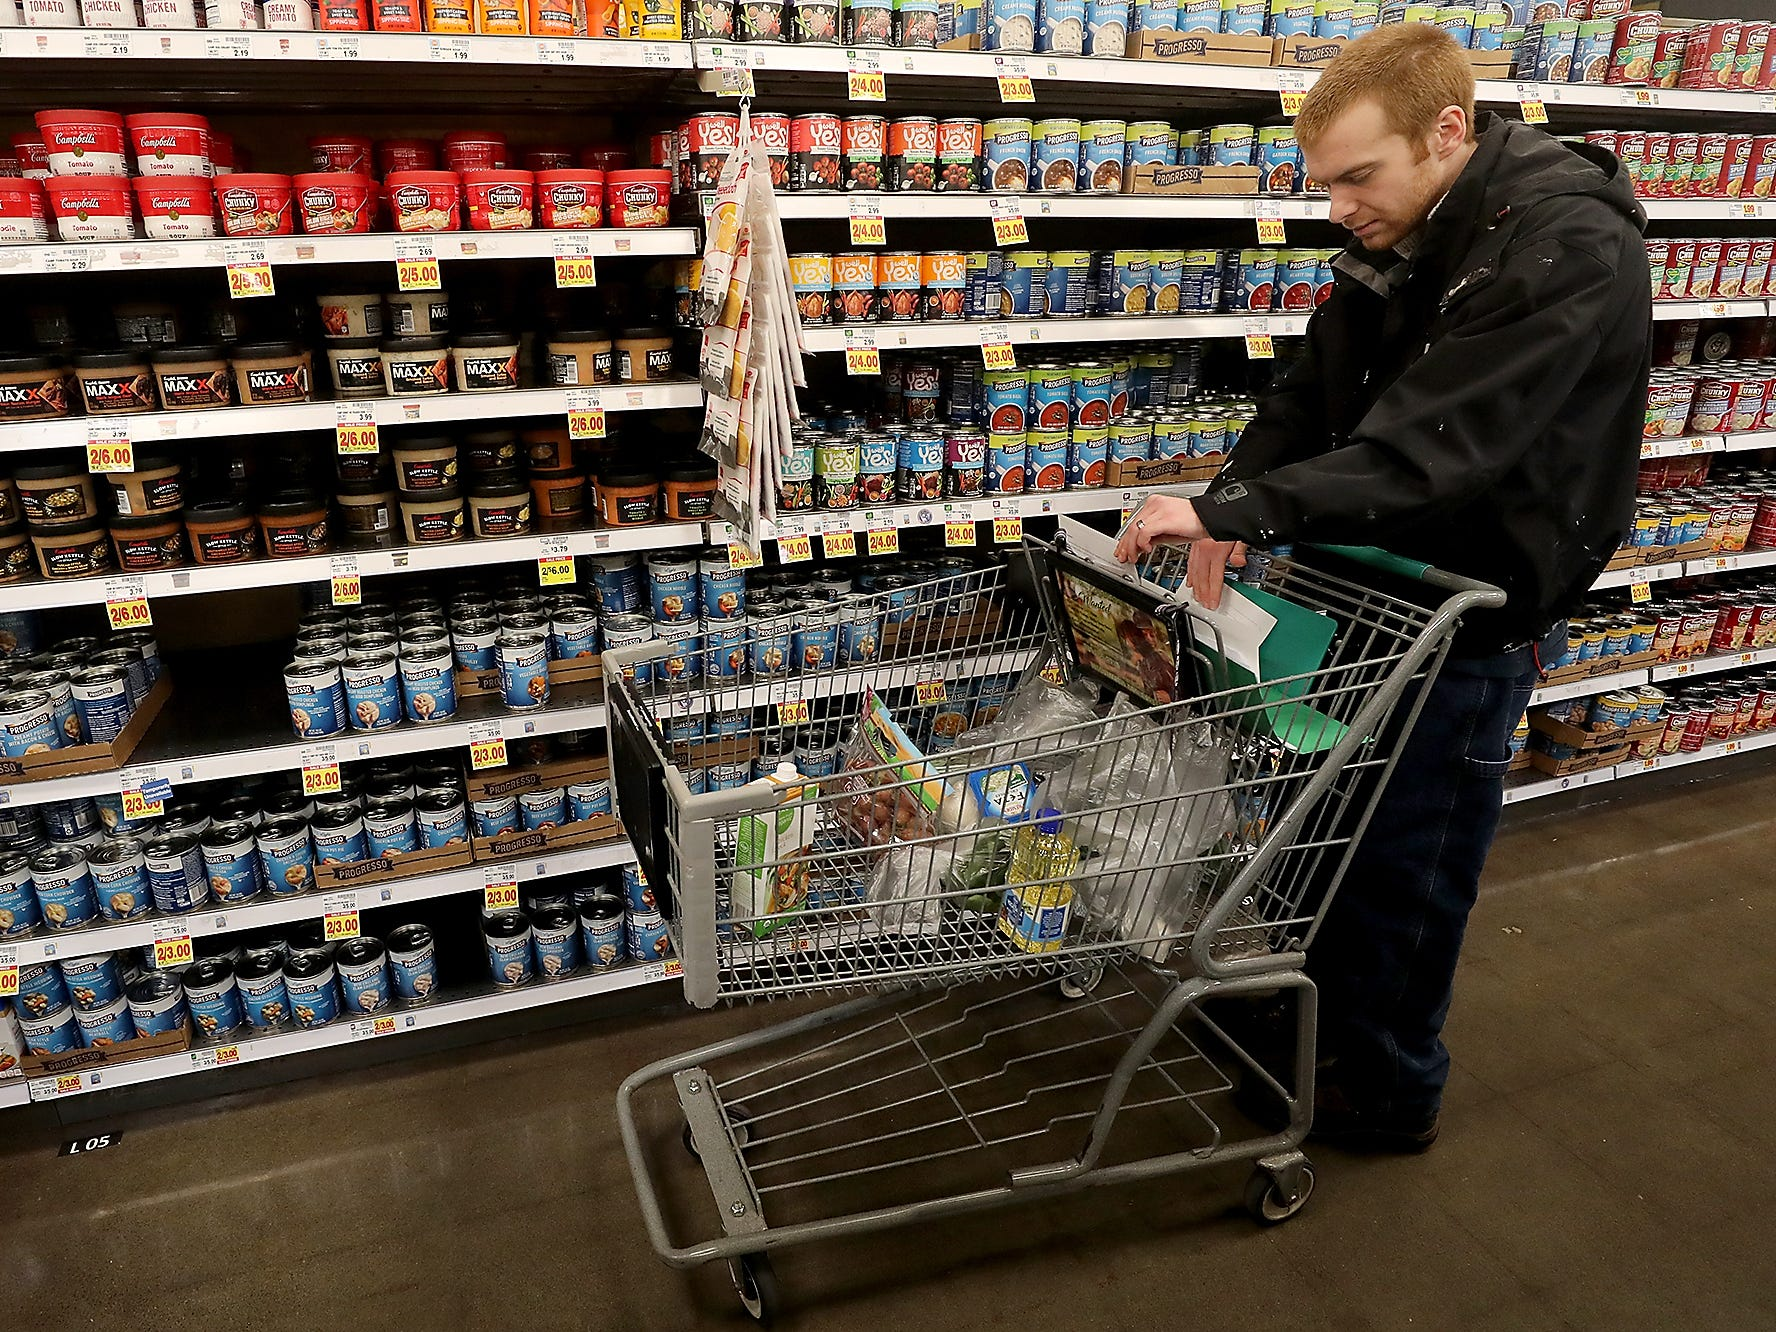 Craig Andrews checks his grocery list in the soup aisle of Fred Meyer in Bremerton on Wednesday, February 20, 2019.